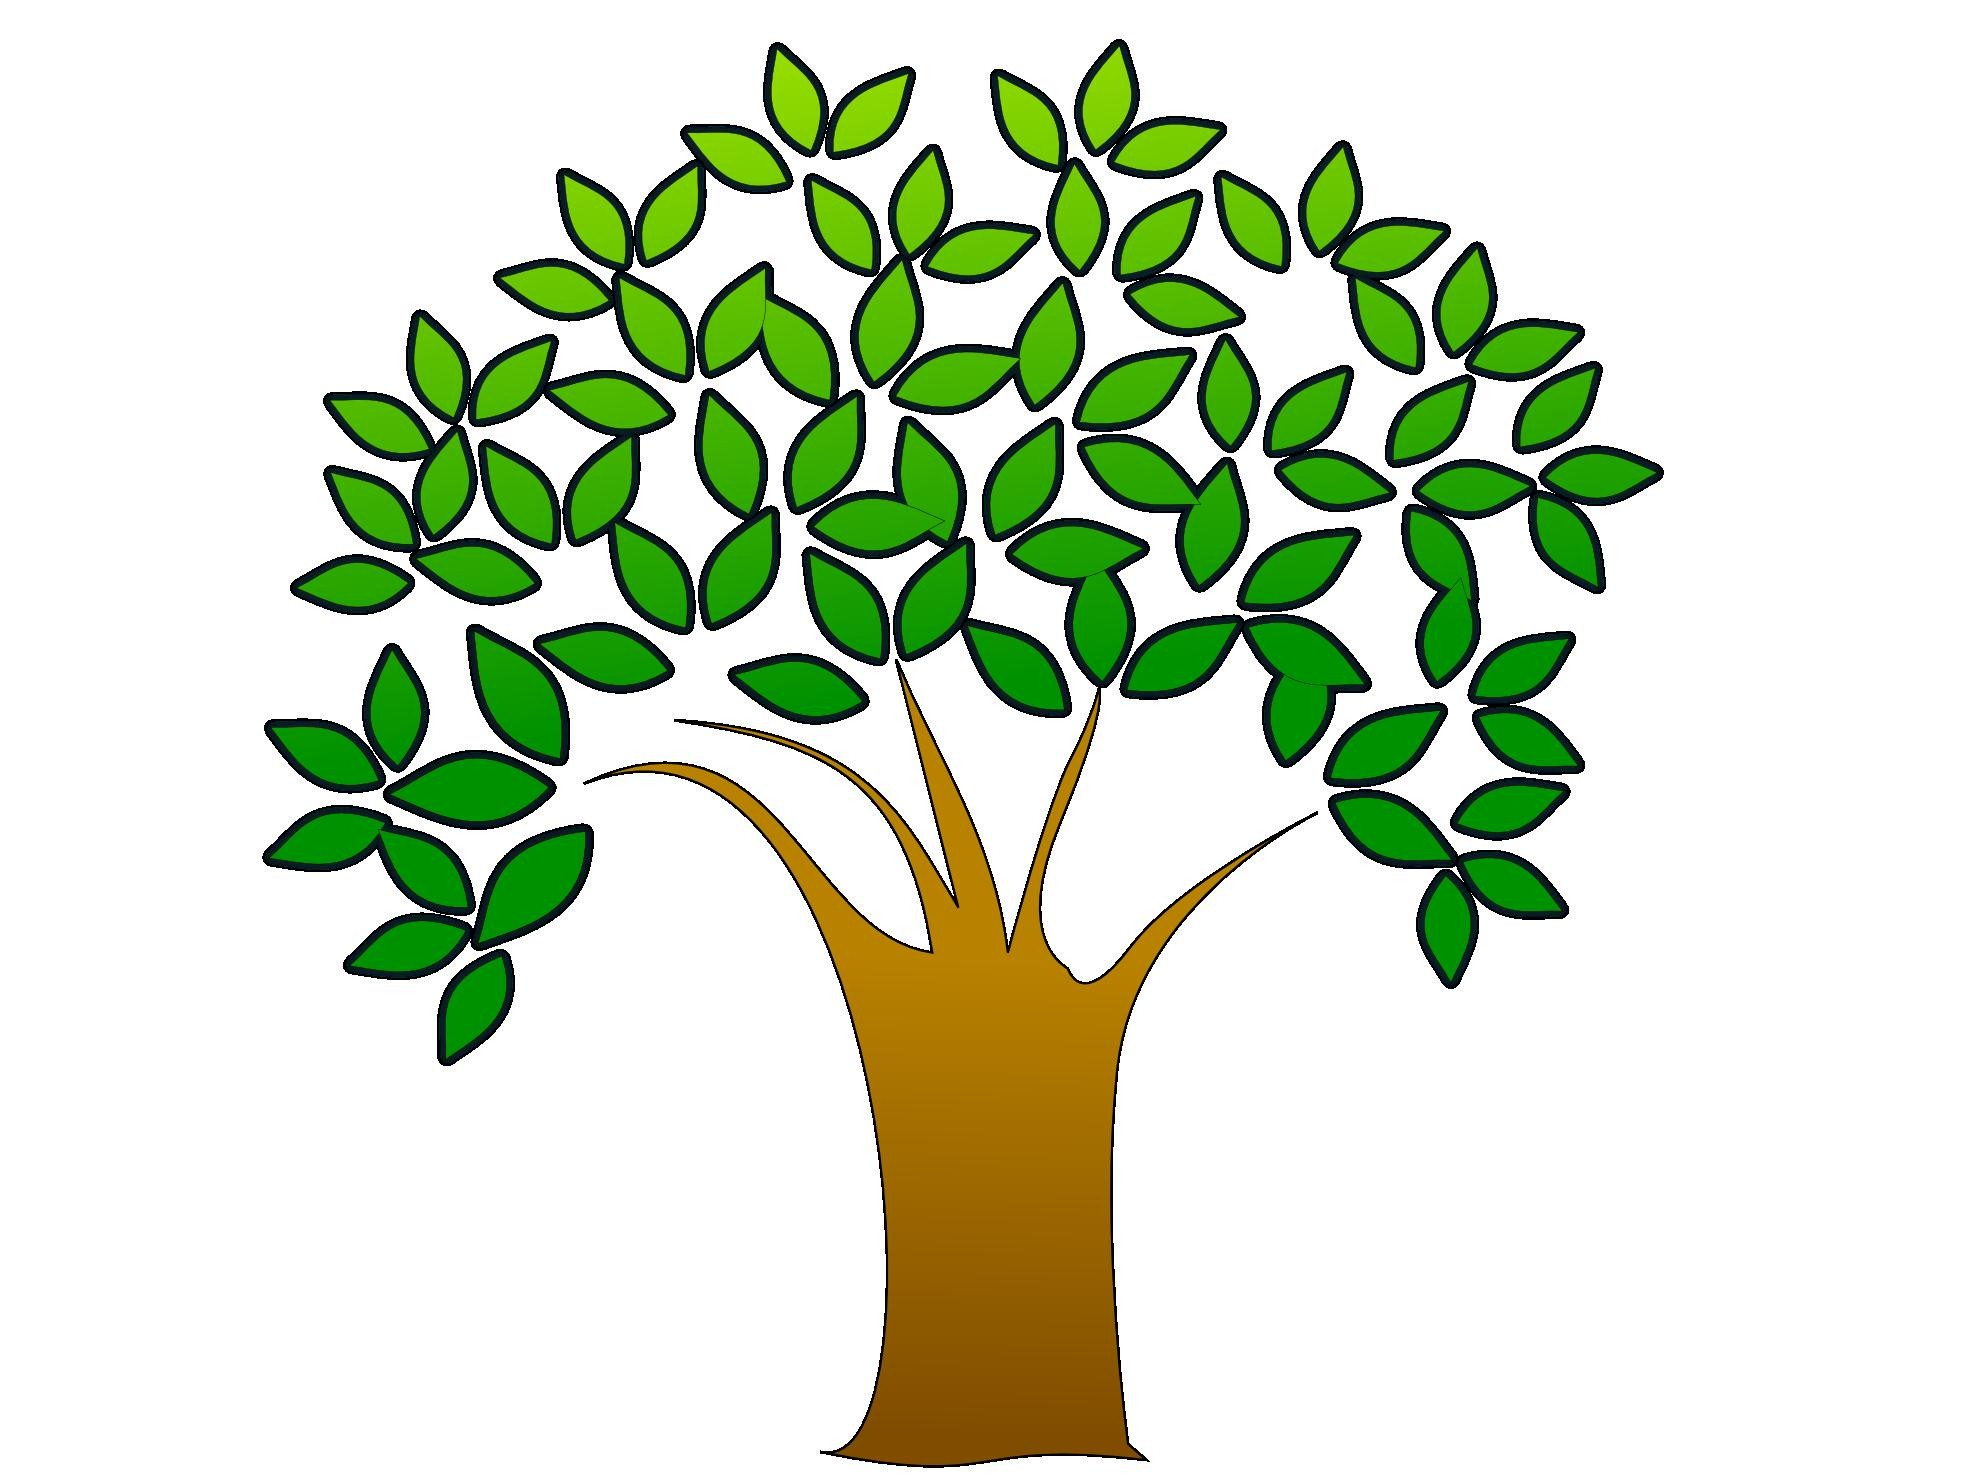 Tree landscaping clipart.